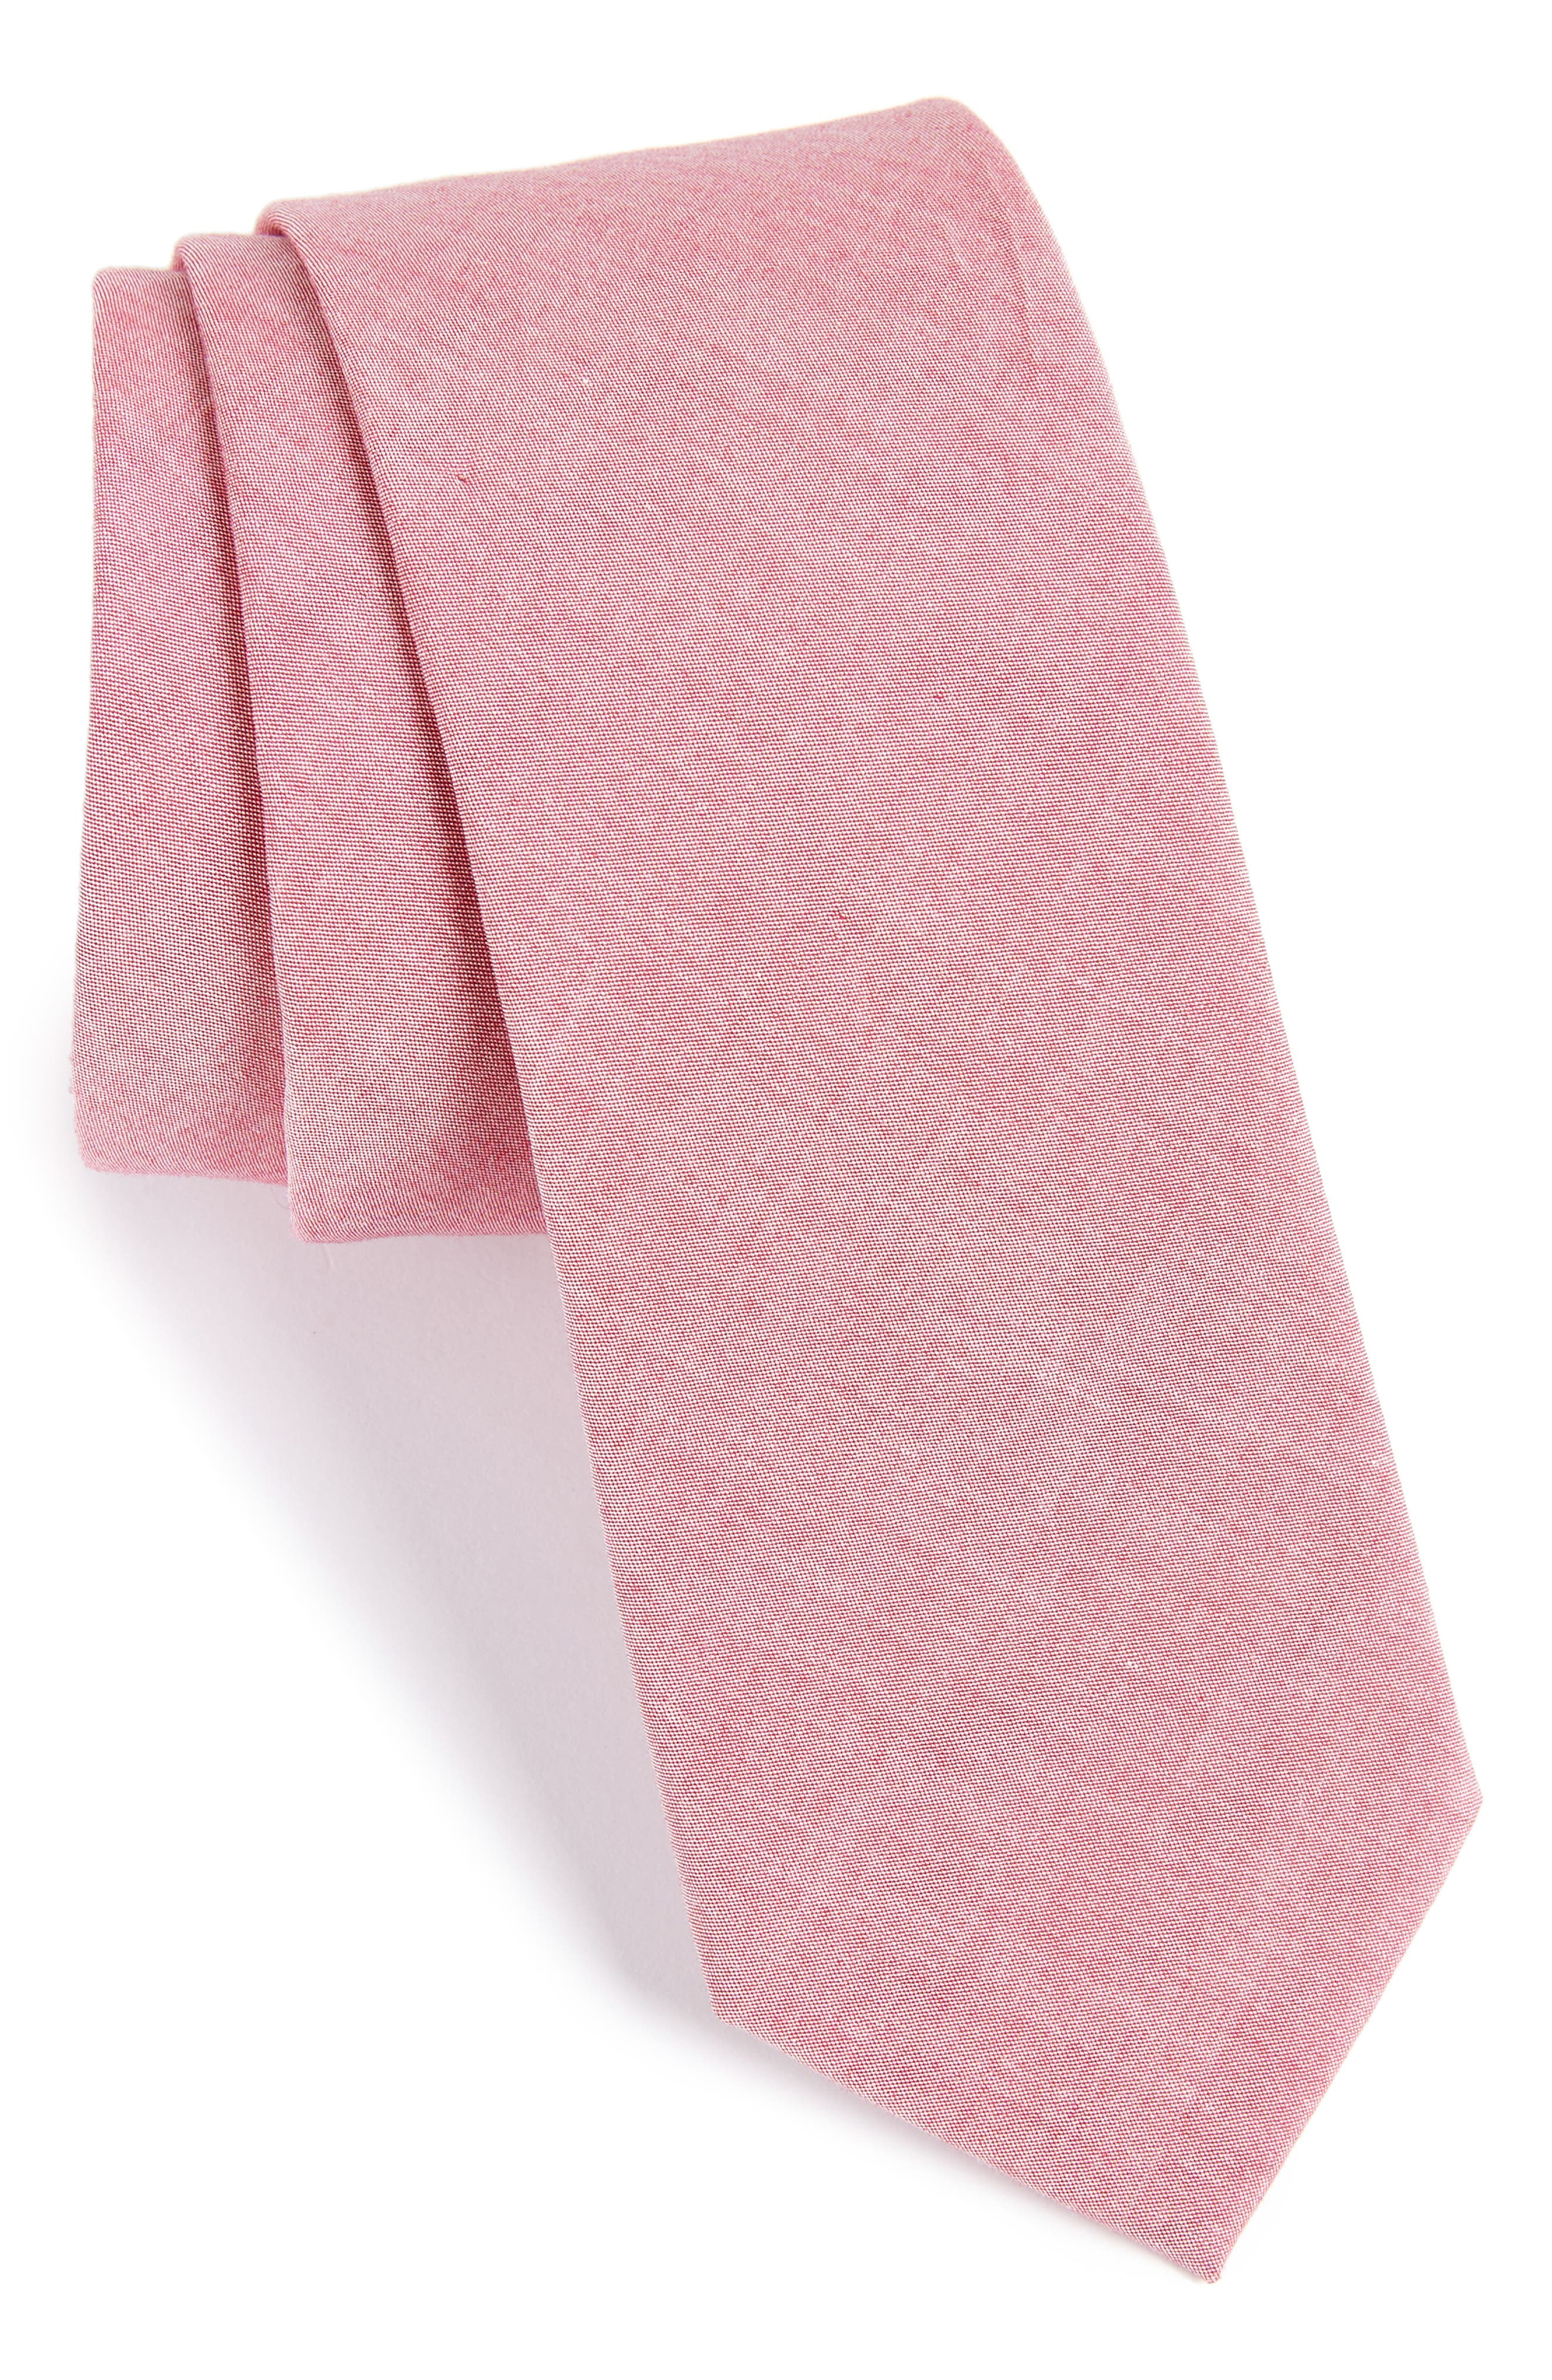 Johnson Solid Cotton Tie,                             Main thumbnail 1, color,                             Red